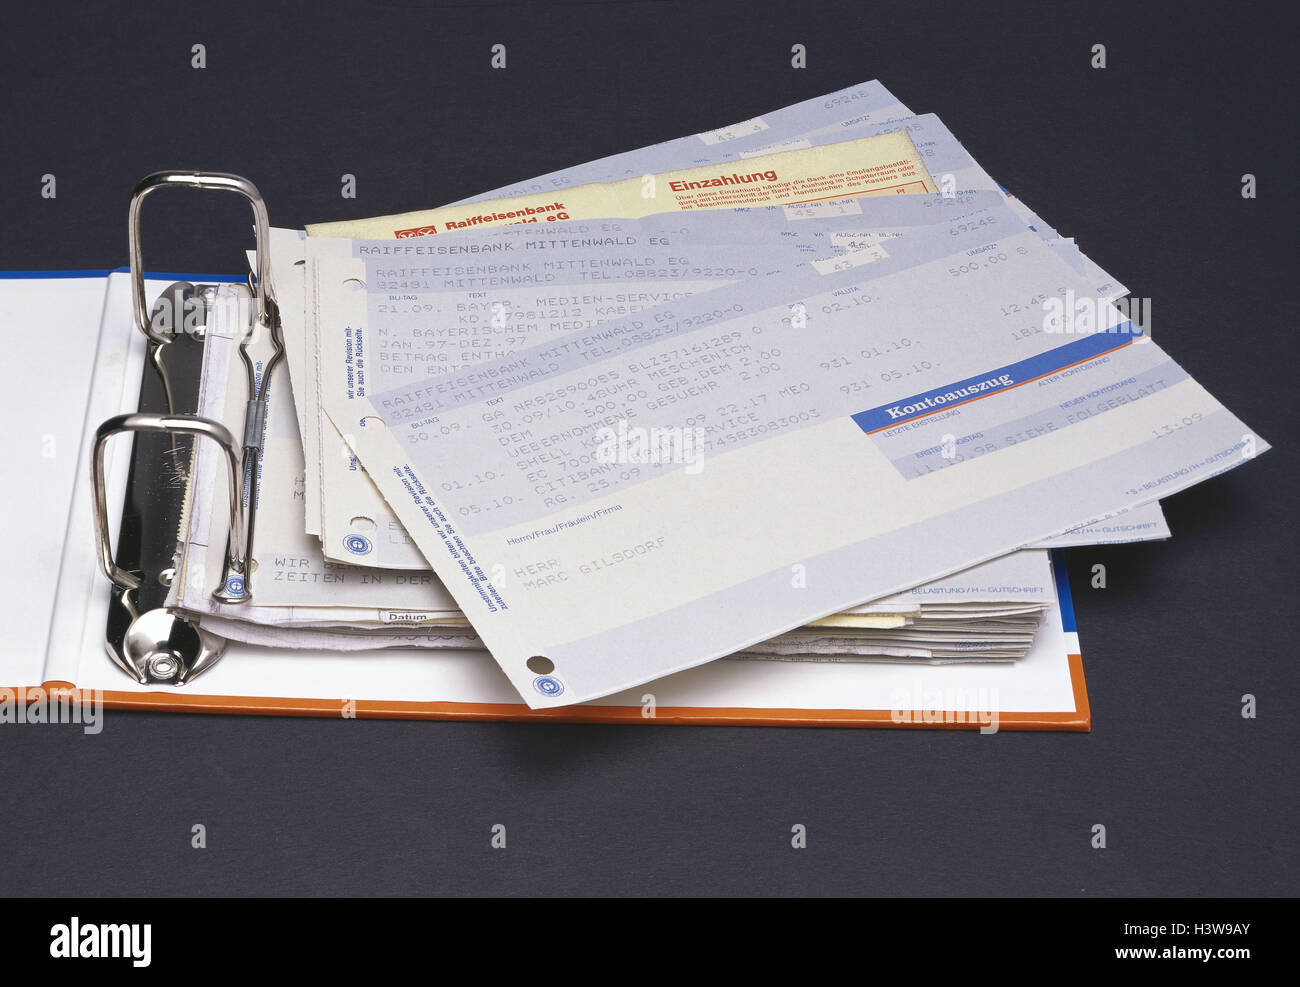 Folder, bank statements, bank statement, bank statement, bank, banking transactions, vouchers, credit balance, product - Stock Image